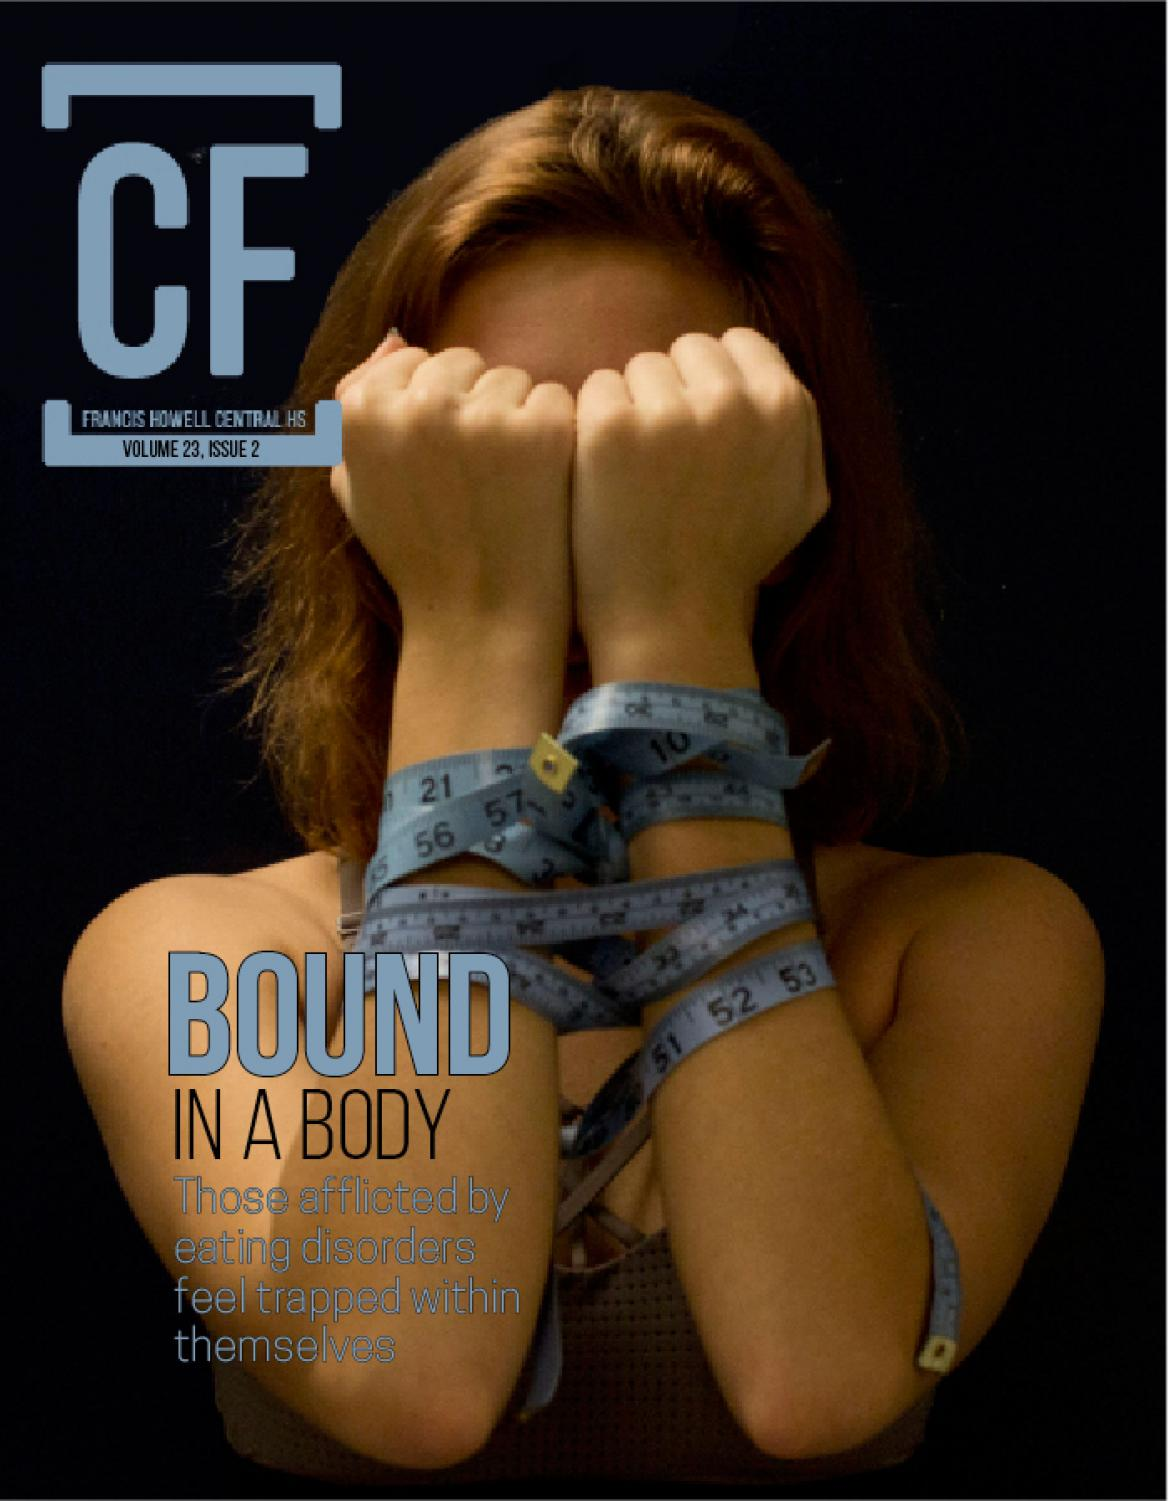 This issue, we focus on eating disorders and their negative effects in our community.